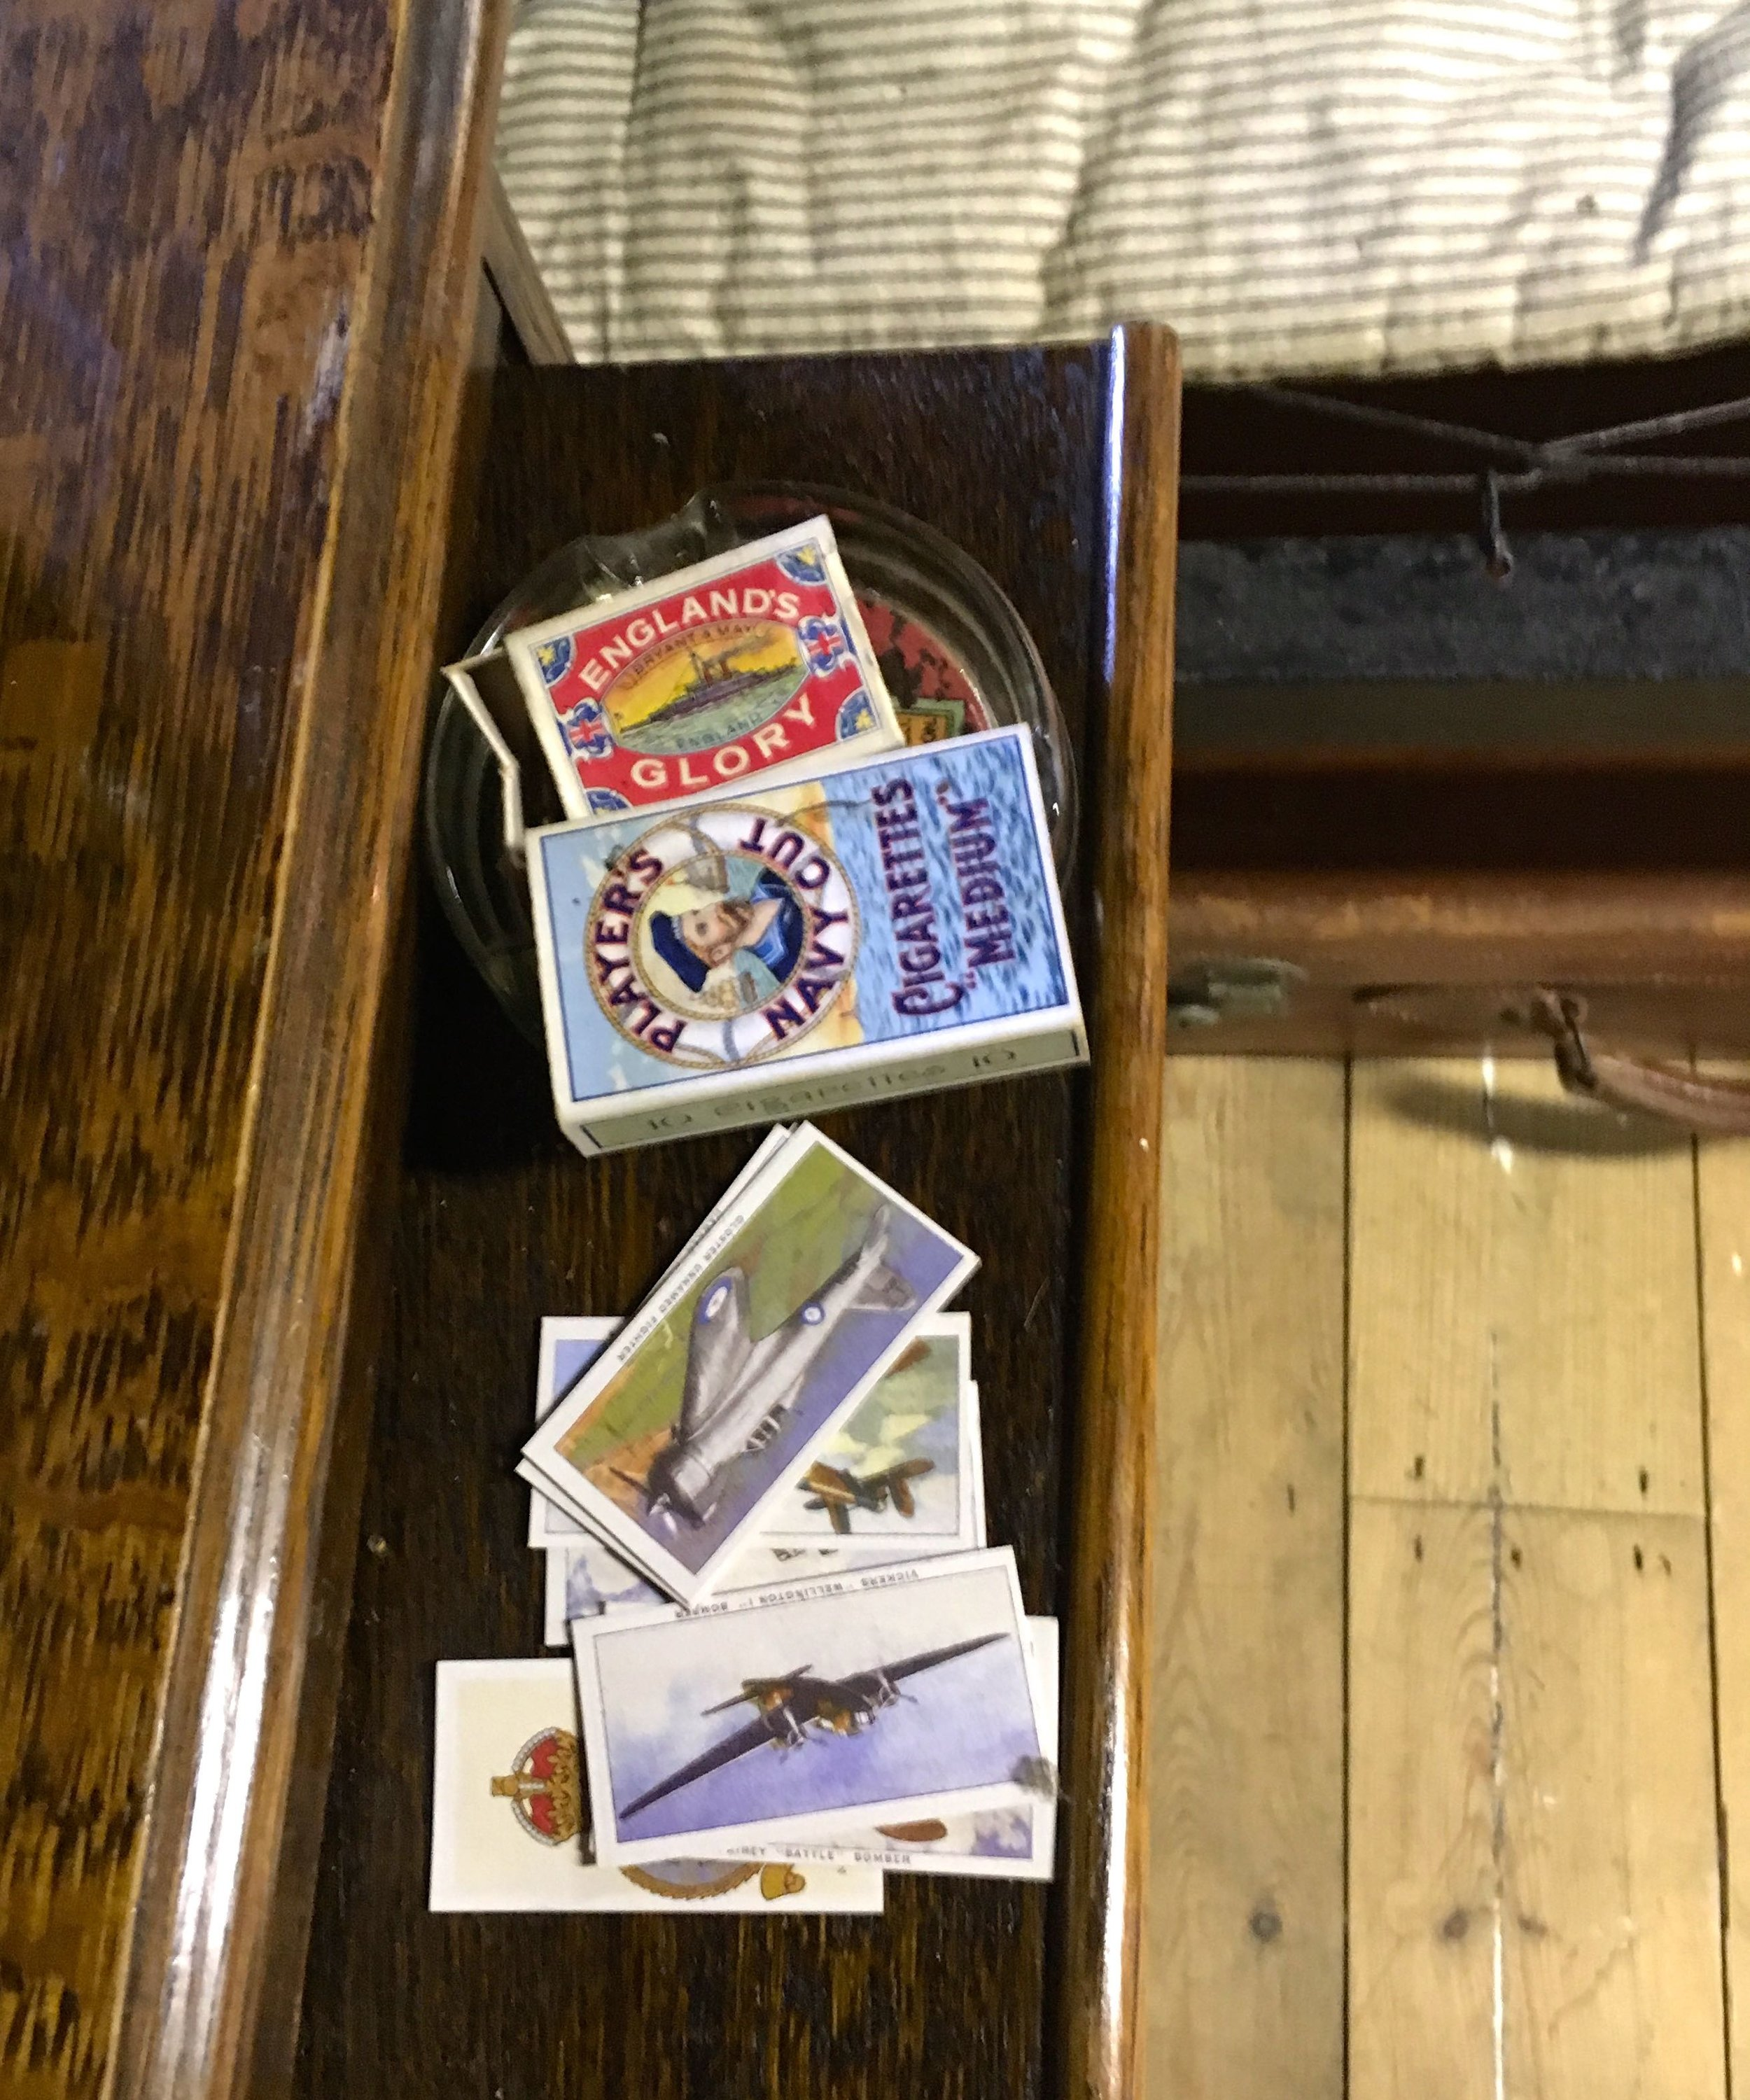 cigarettes, matches and cigarette cards on the bedside cabinet